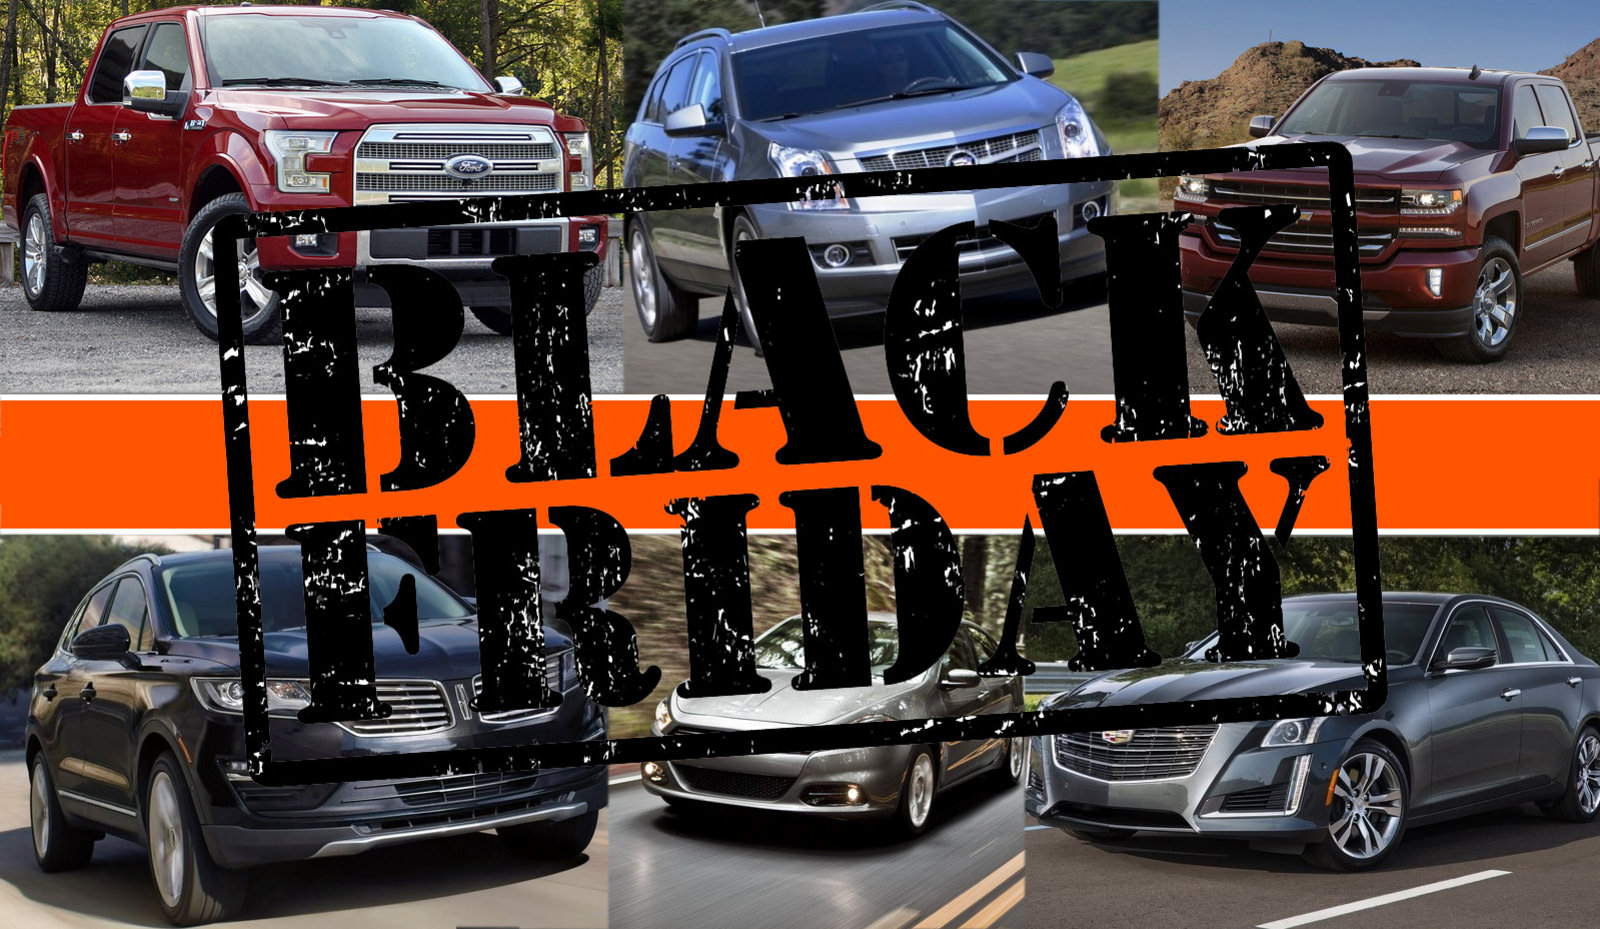 New Car Lease Deals >> Black Friday Car Deals 2016 Guide - Top Speed